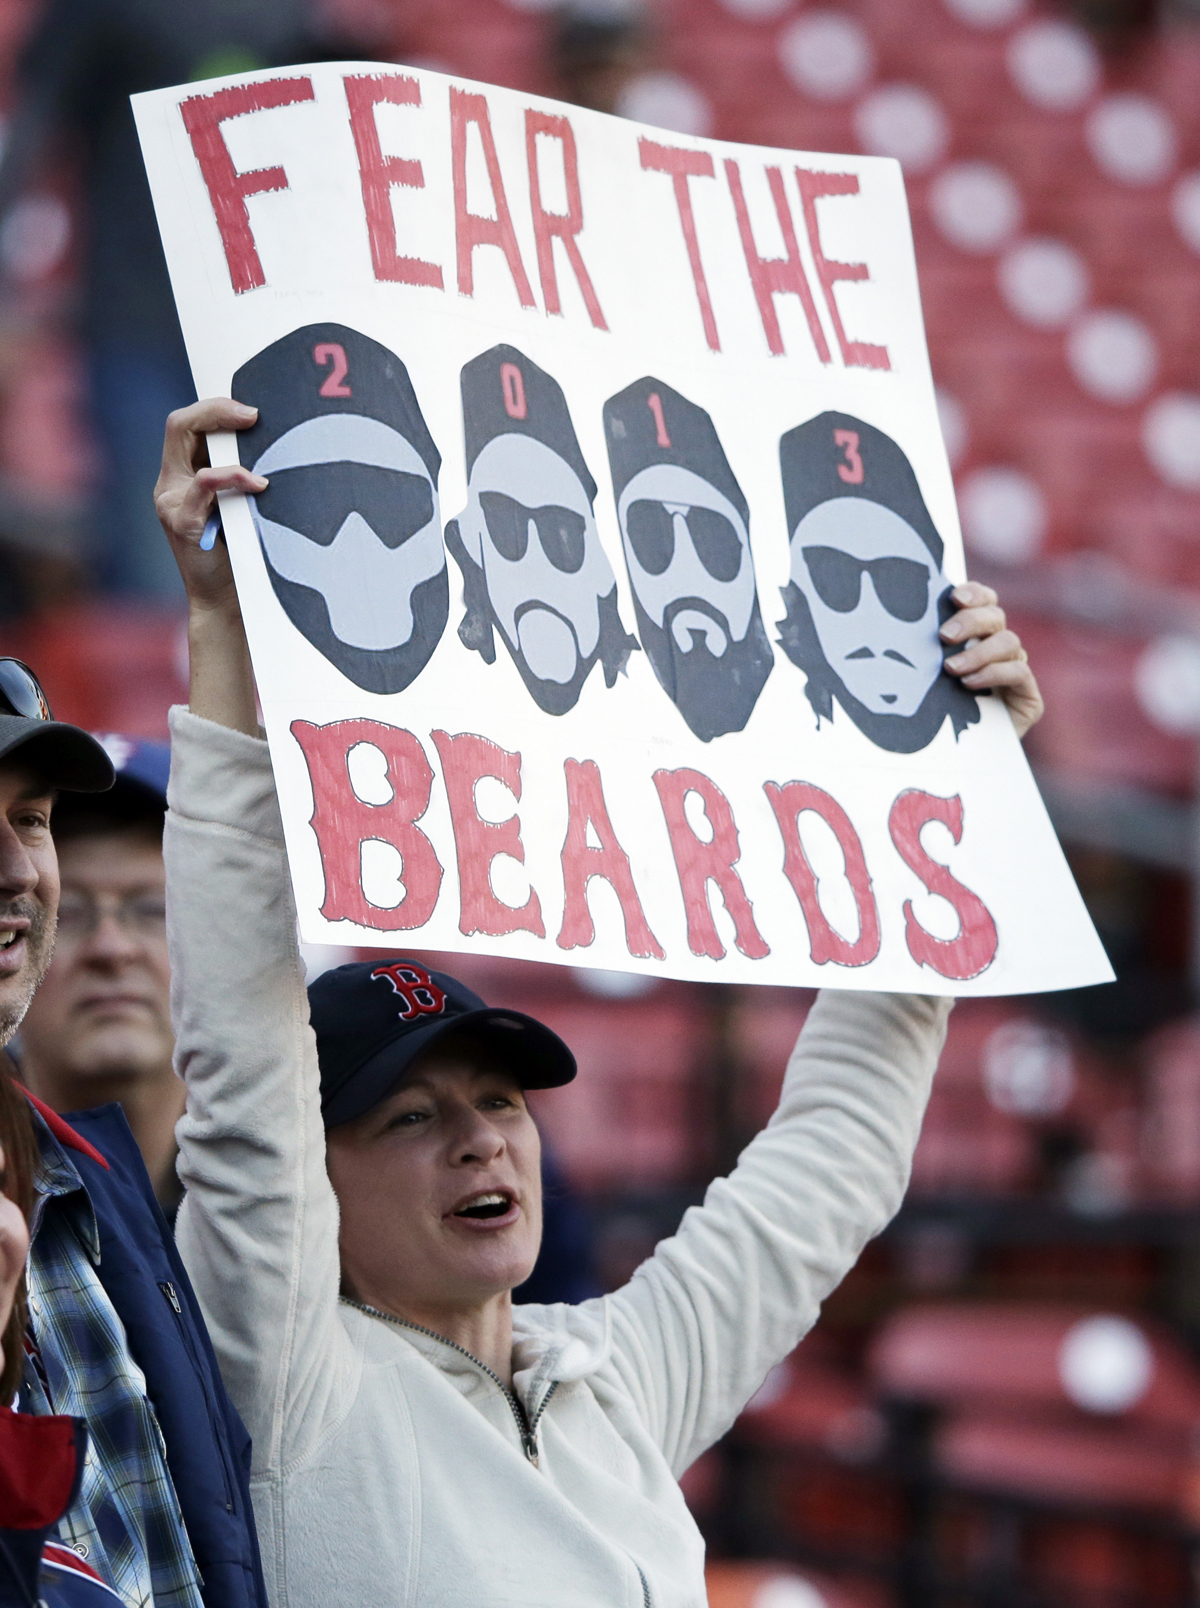 boston red sox fan fear the beards